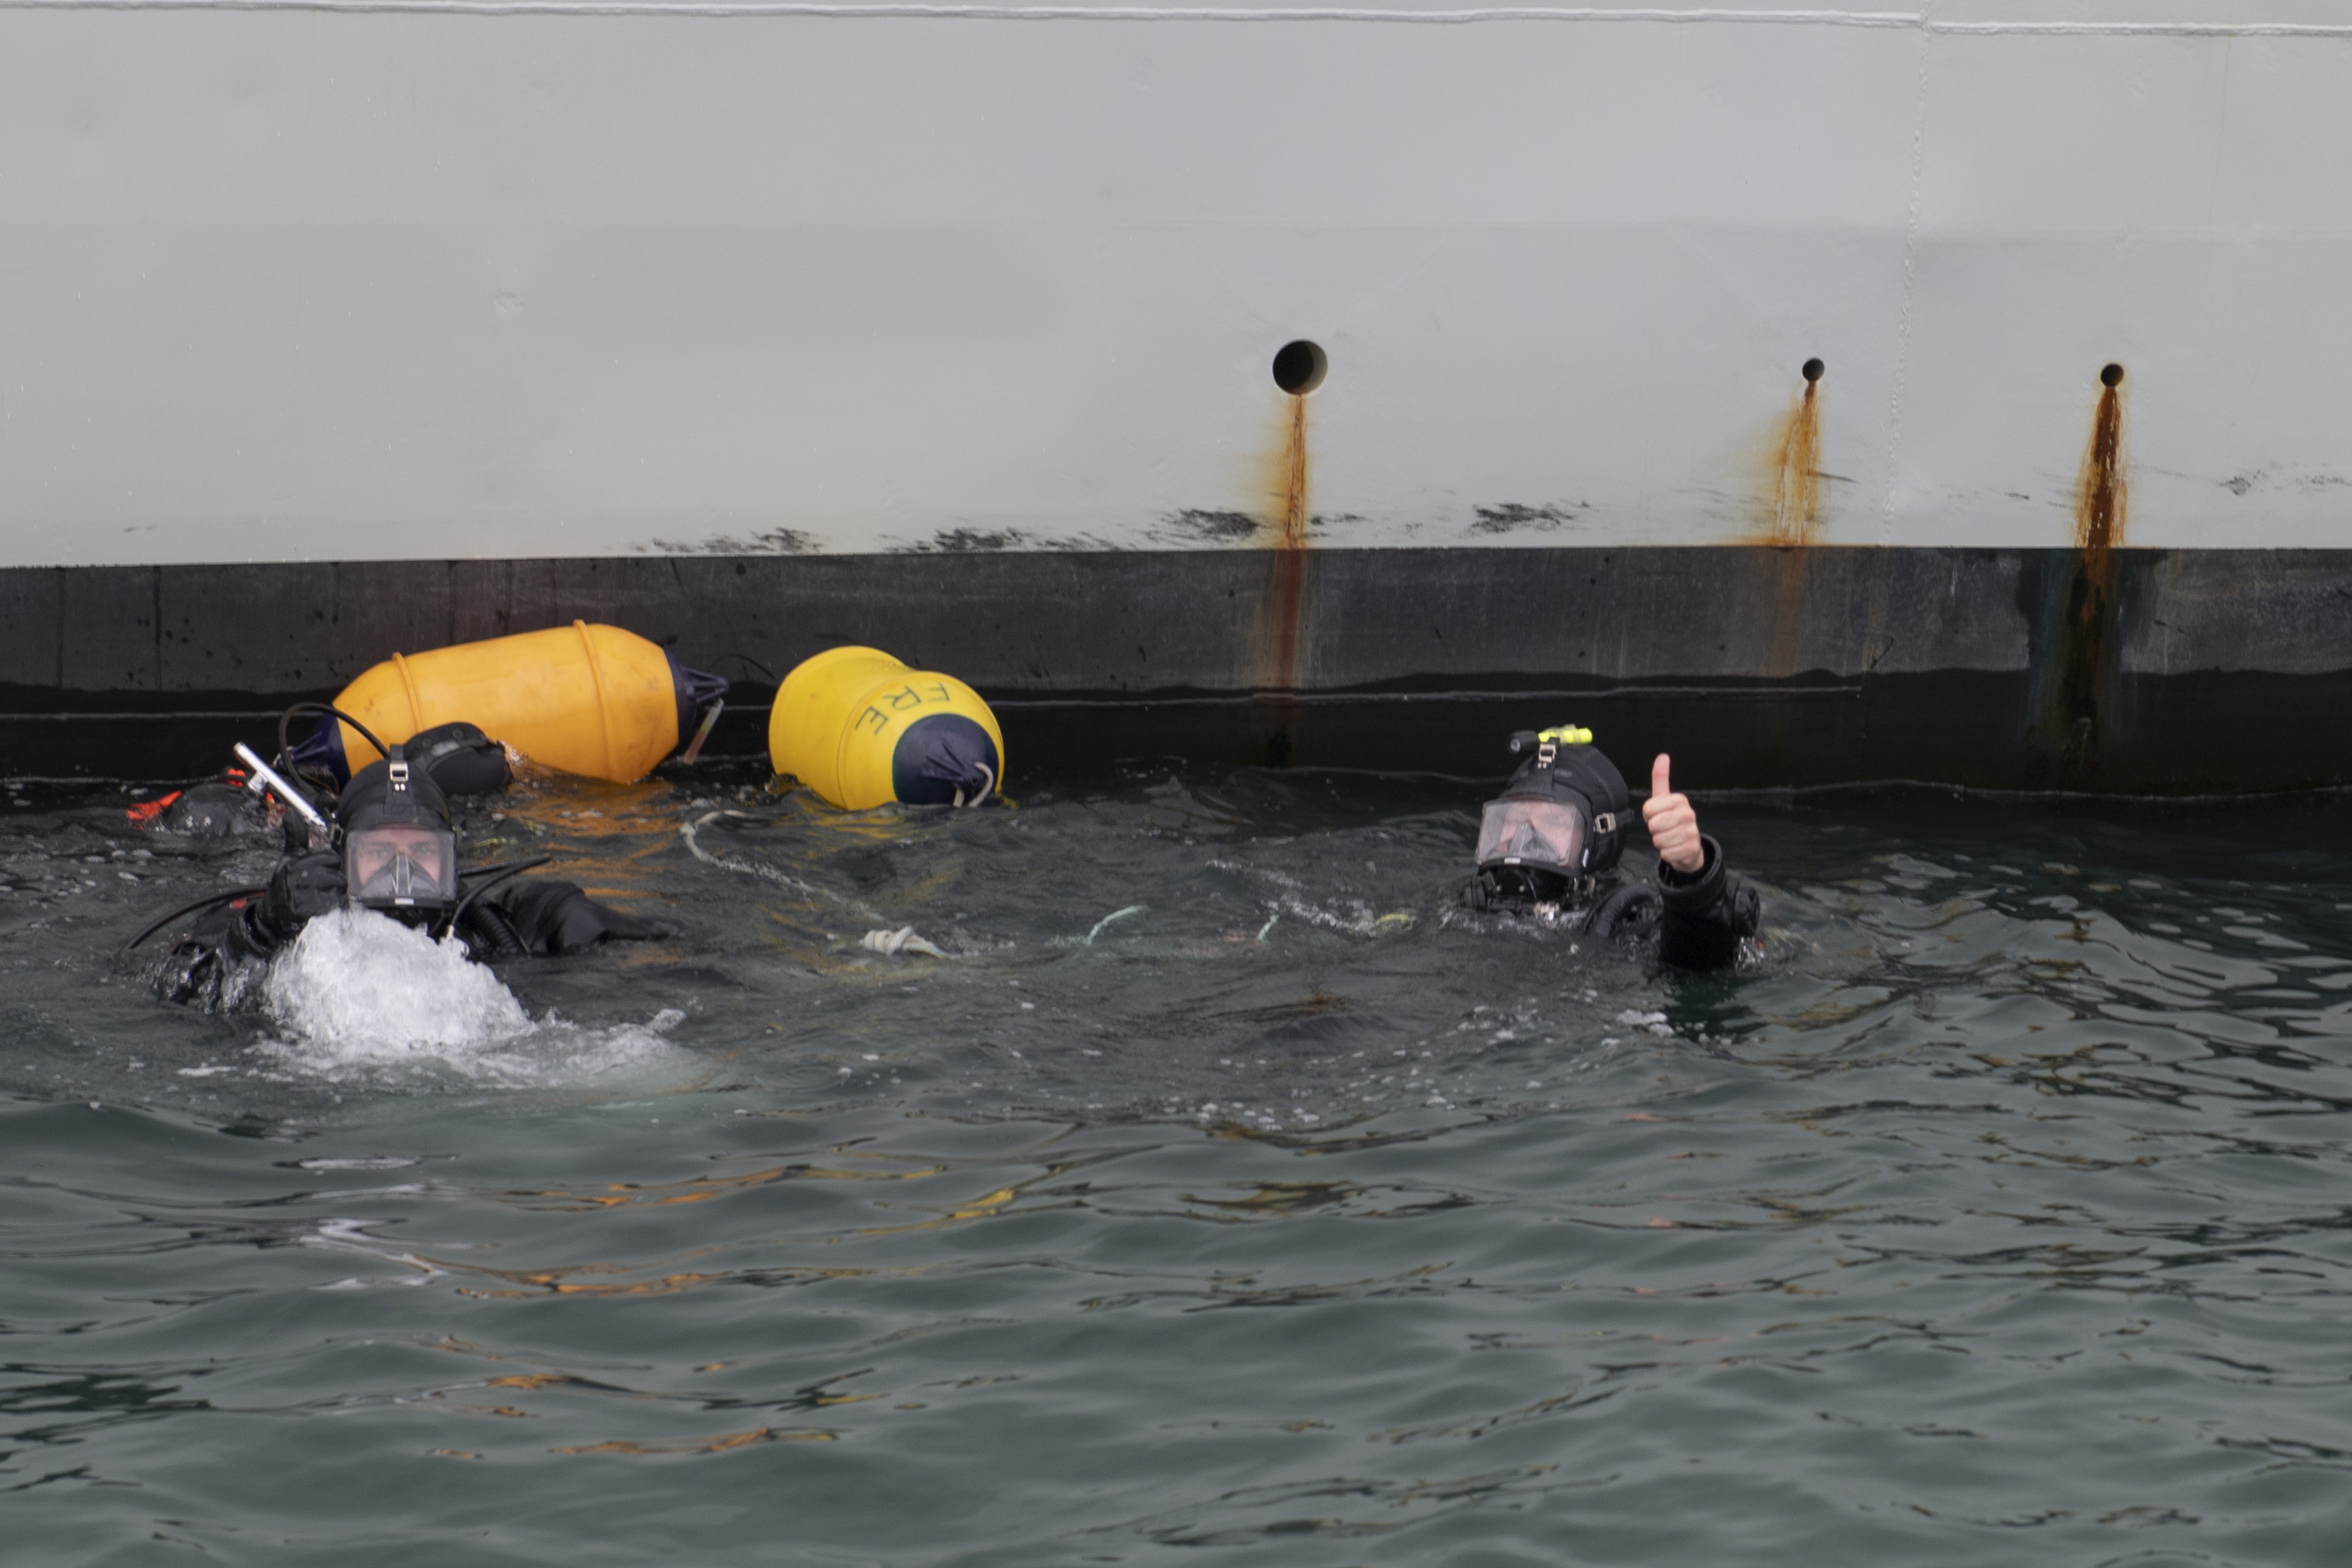 Leading Seaman John Kester (left) and Lieutenant (Navy) Sebastien Williamson give a thumbs up during a routine inspection of HMCS Fredericton at the Port of Reykjavik, Iceland during Operation REASSURANCE, in July 2020. The RCN rank of leading seaman has since been changed to sailor 1st class.